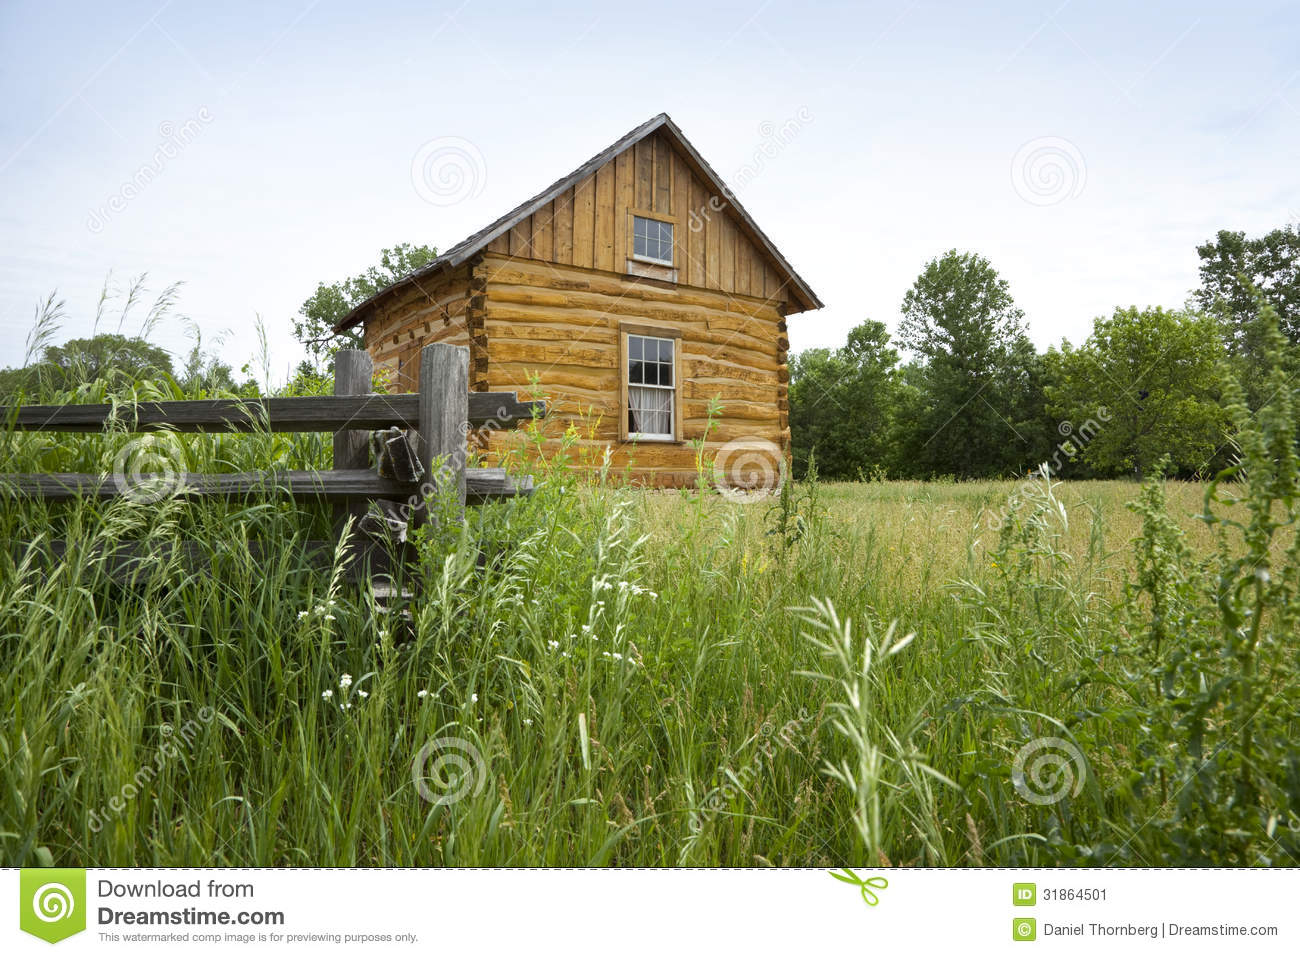 2e9eb35fe4cf972e further Childrens Play Rustic Kids San Francisco also 93019 together with Christmas Dinnerware besides 7 Cozy Winter Cabins To Rent Across Canada This Winter. on rustic log cabin plans